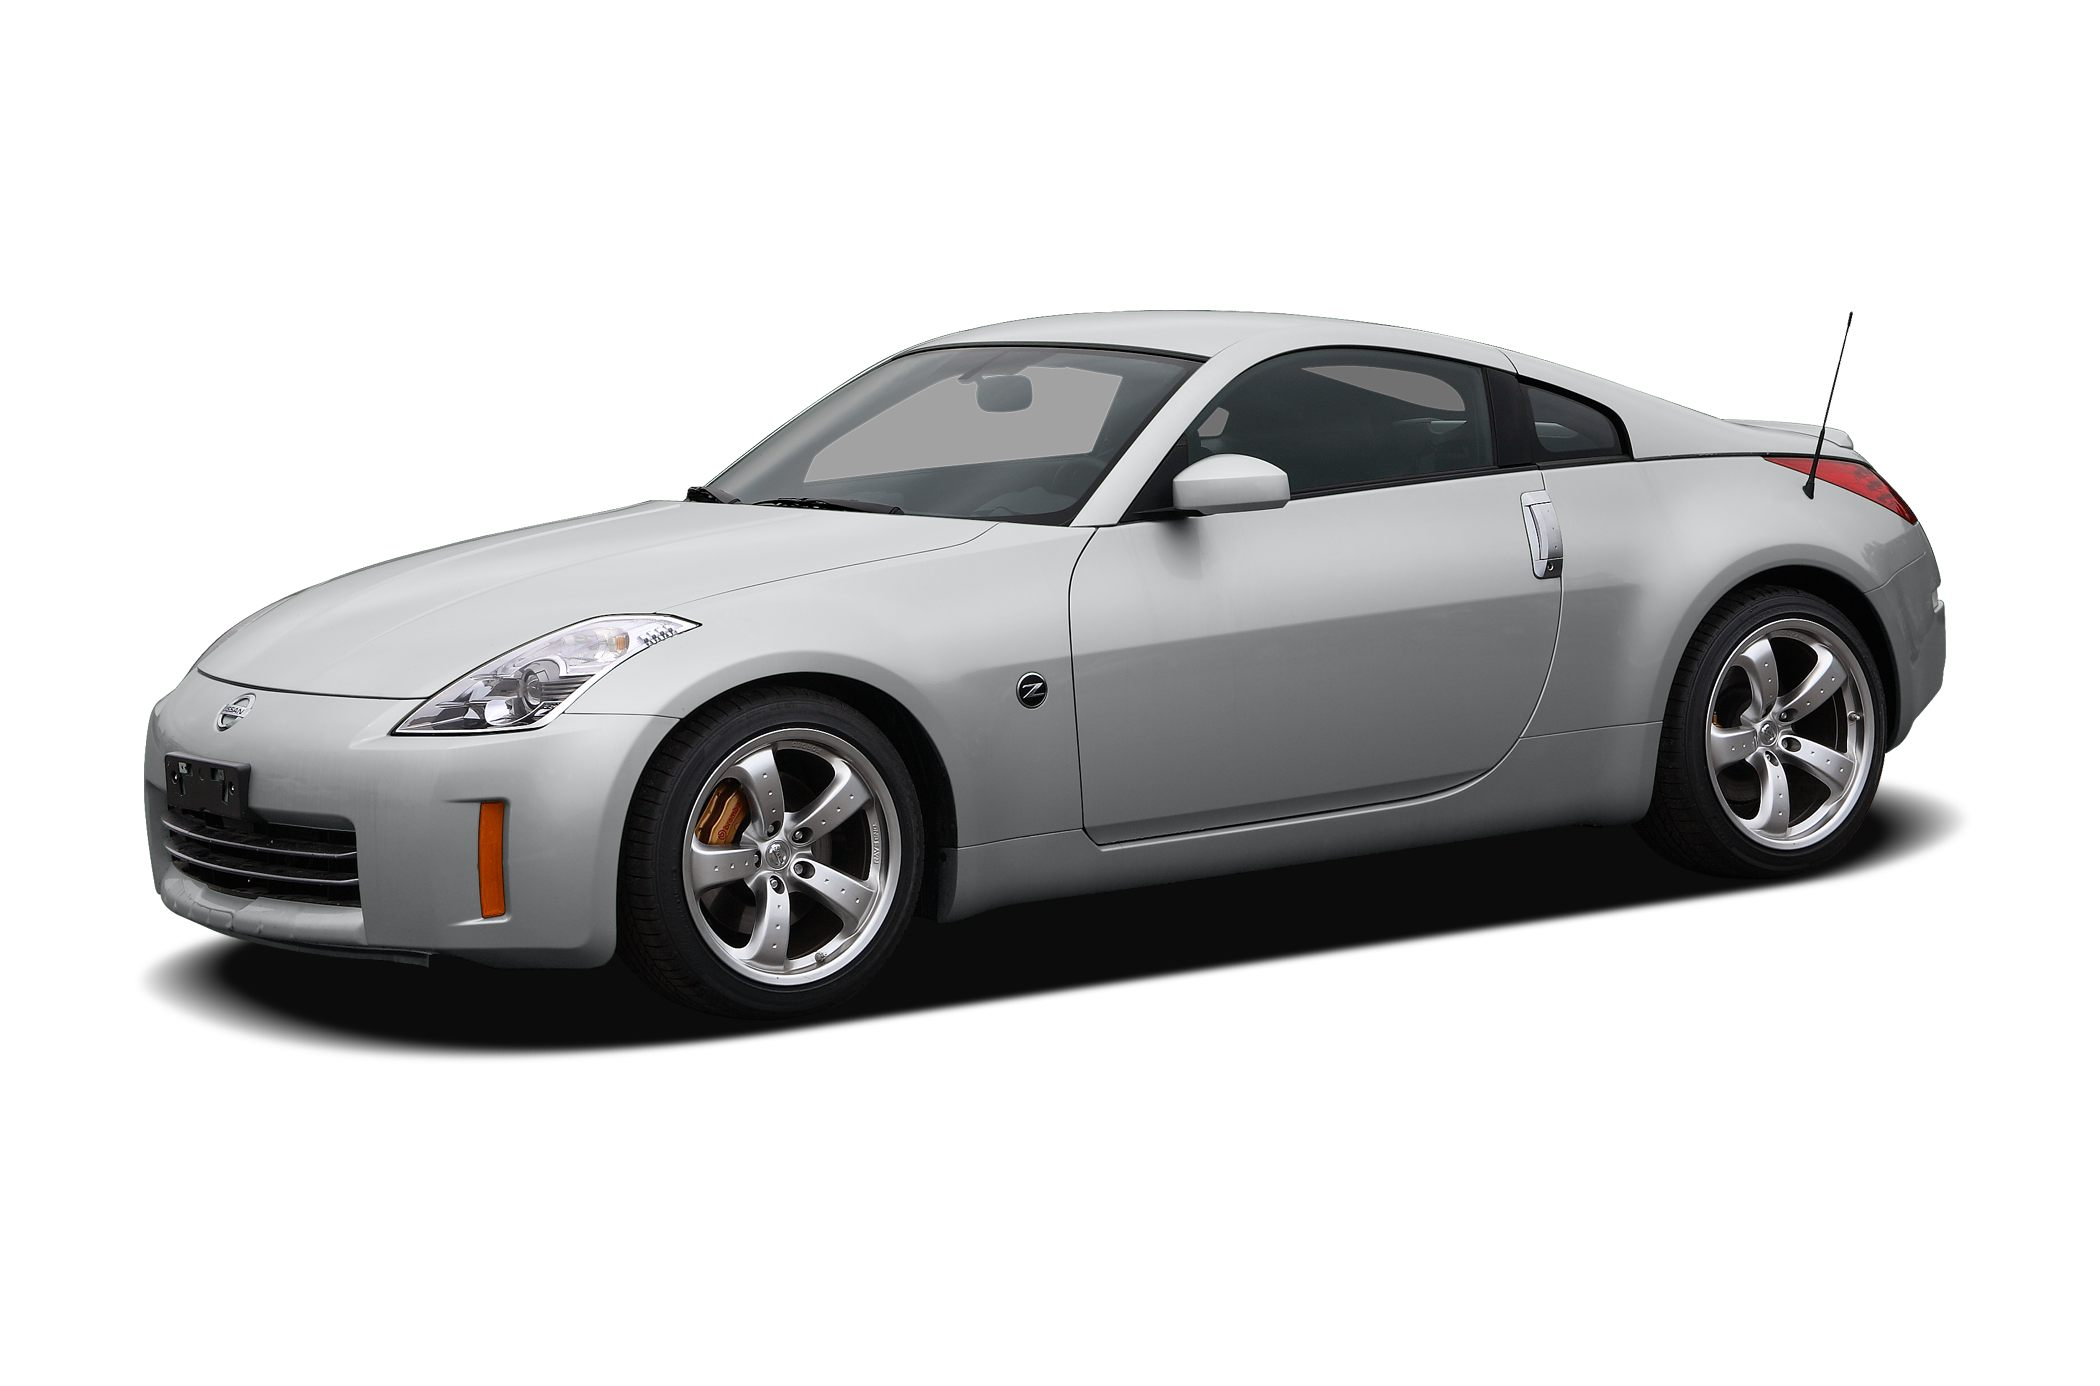 2006 Nissan 350Z Grand Touring Convertible for sale in Churchville for $12,490 with 93,571 miles.